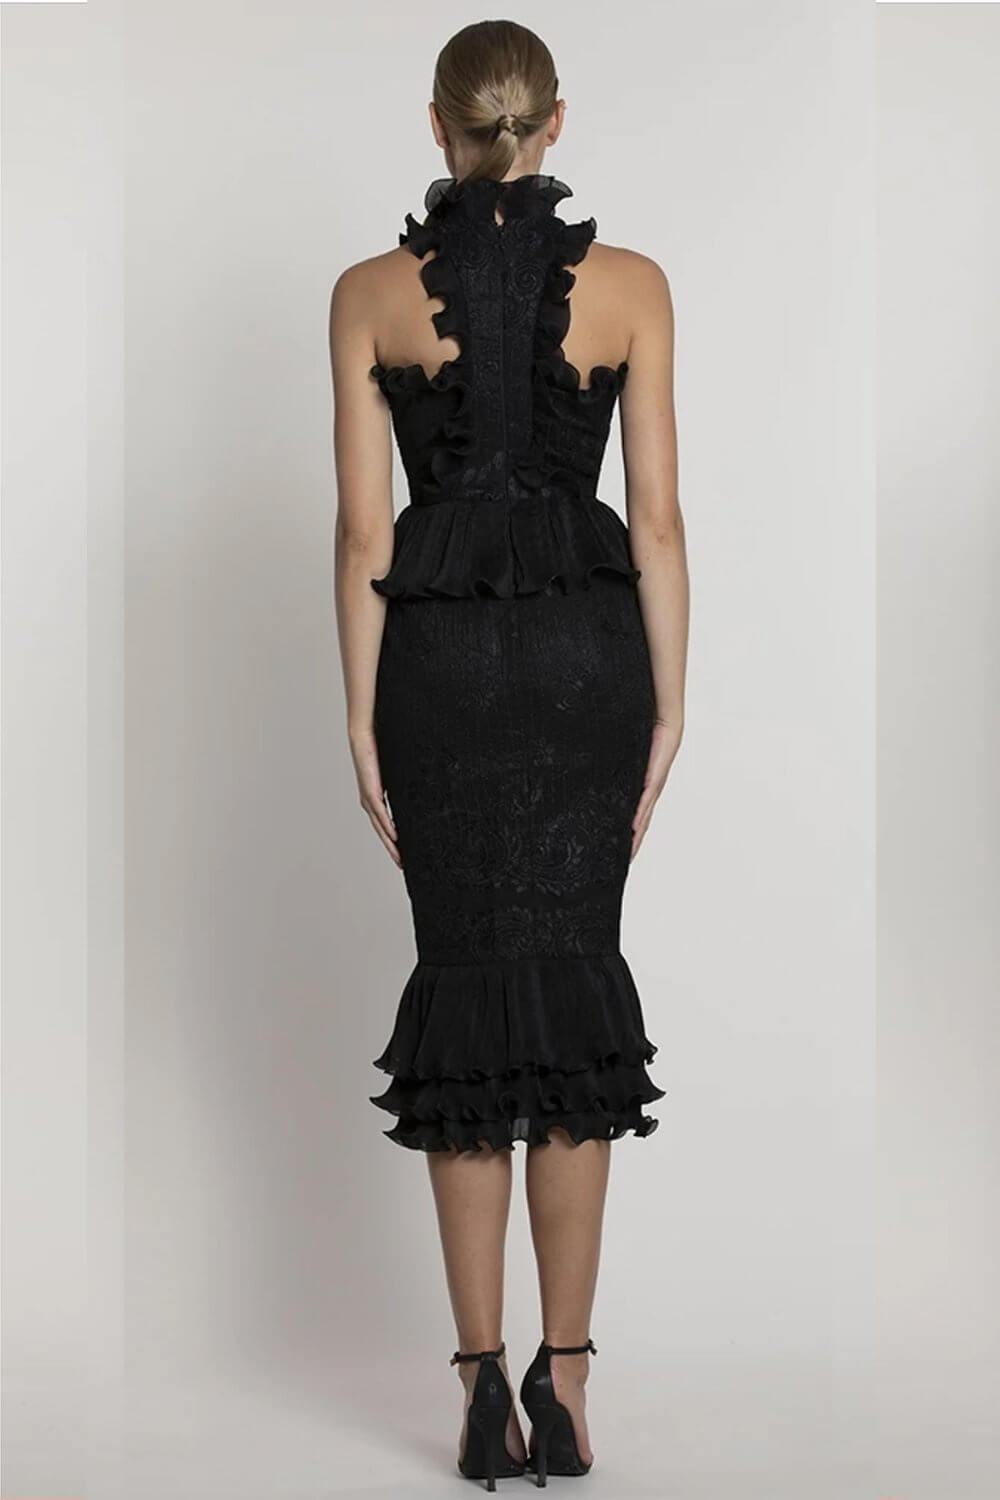 Style BB39D25 Bariano Black Size 4 Tall Height Lace Wedding Guest Cocktail Dress on Queenly